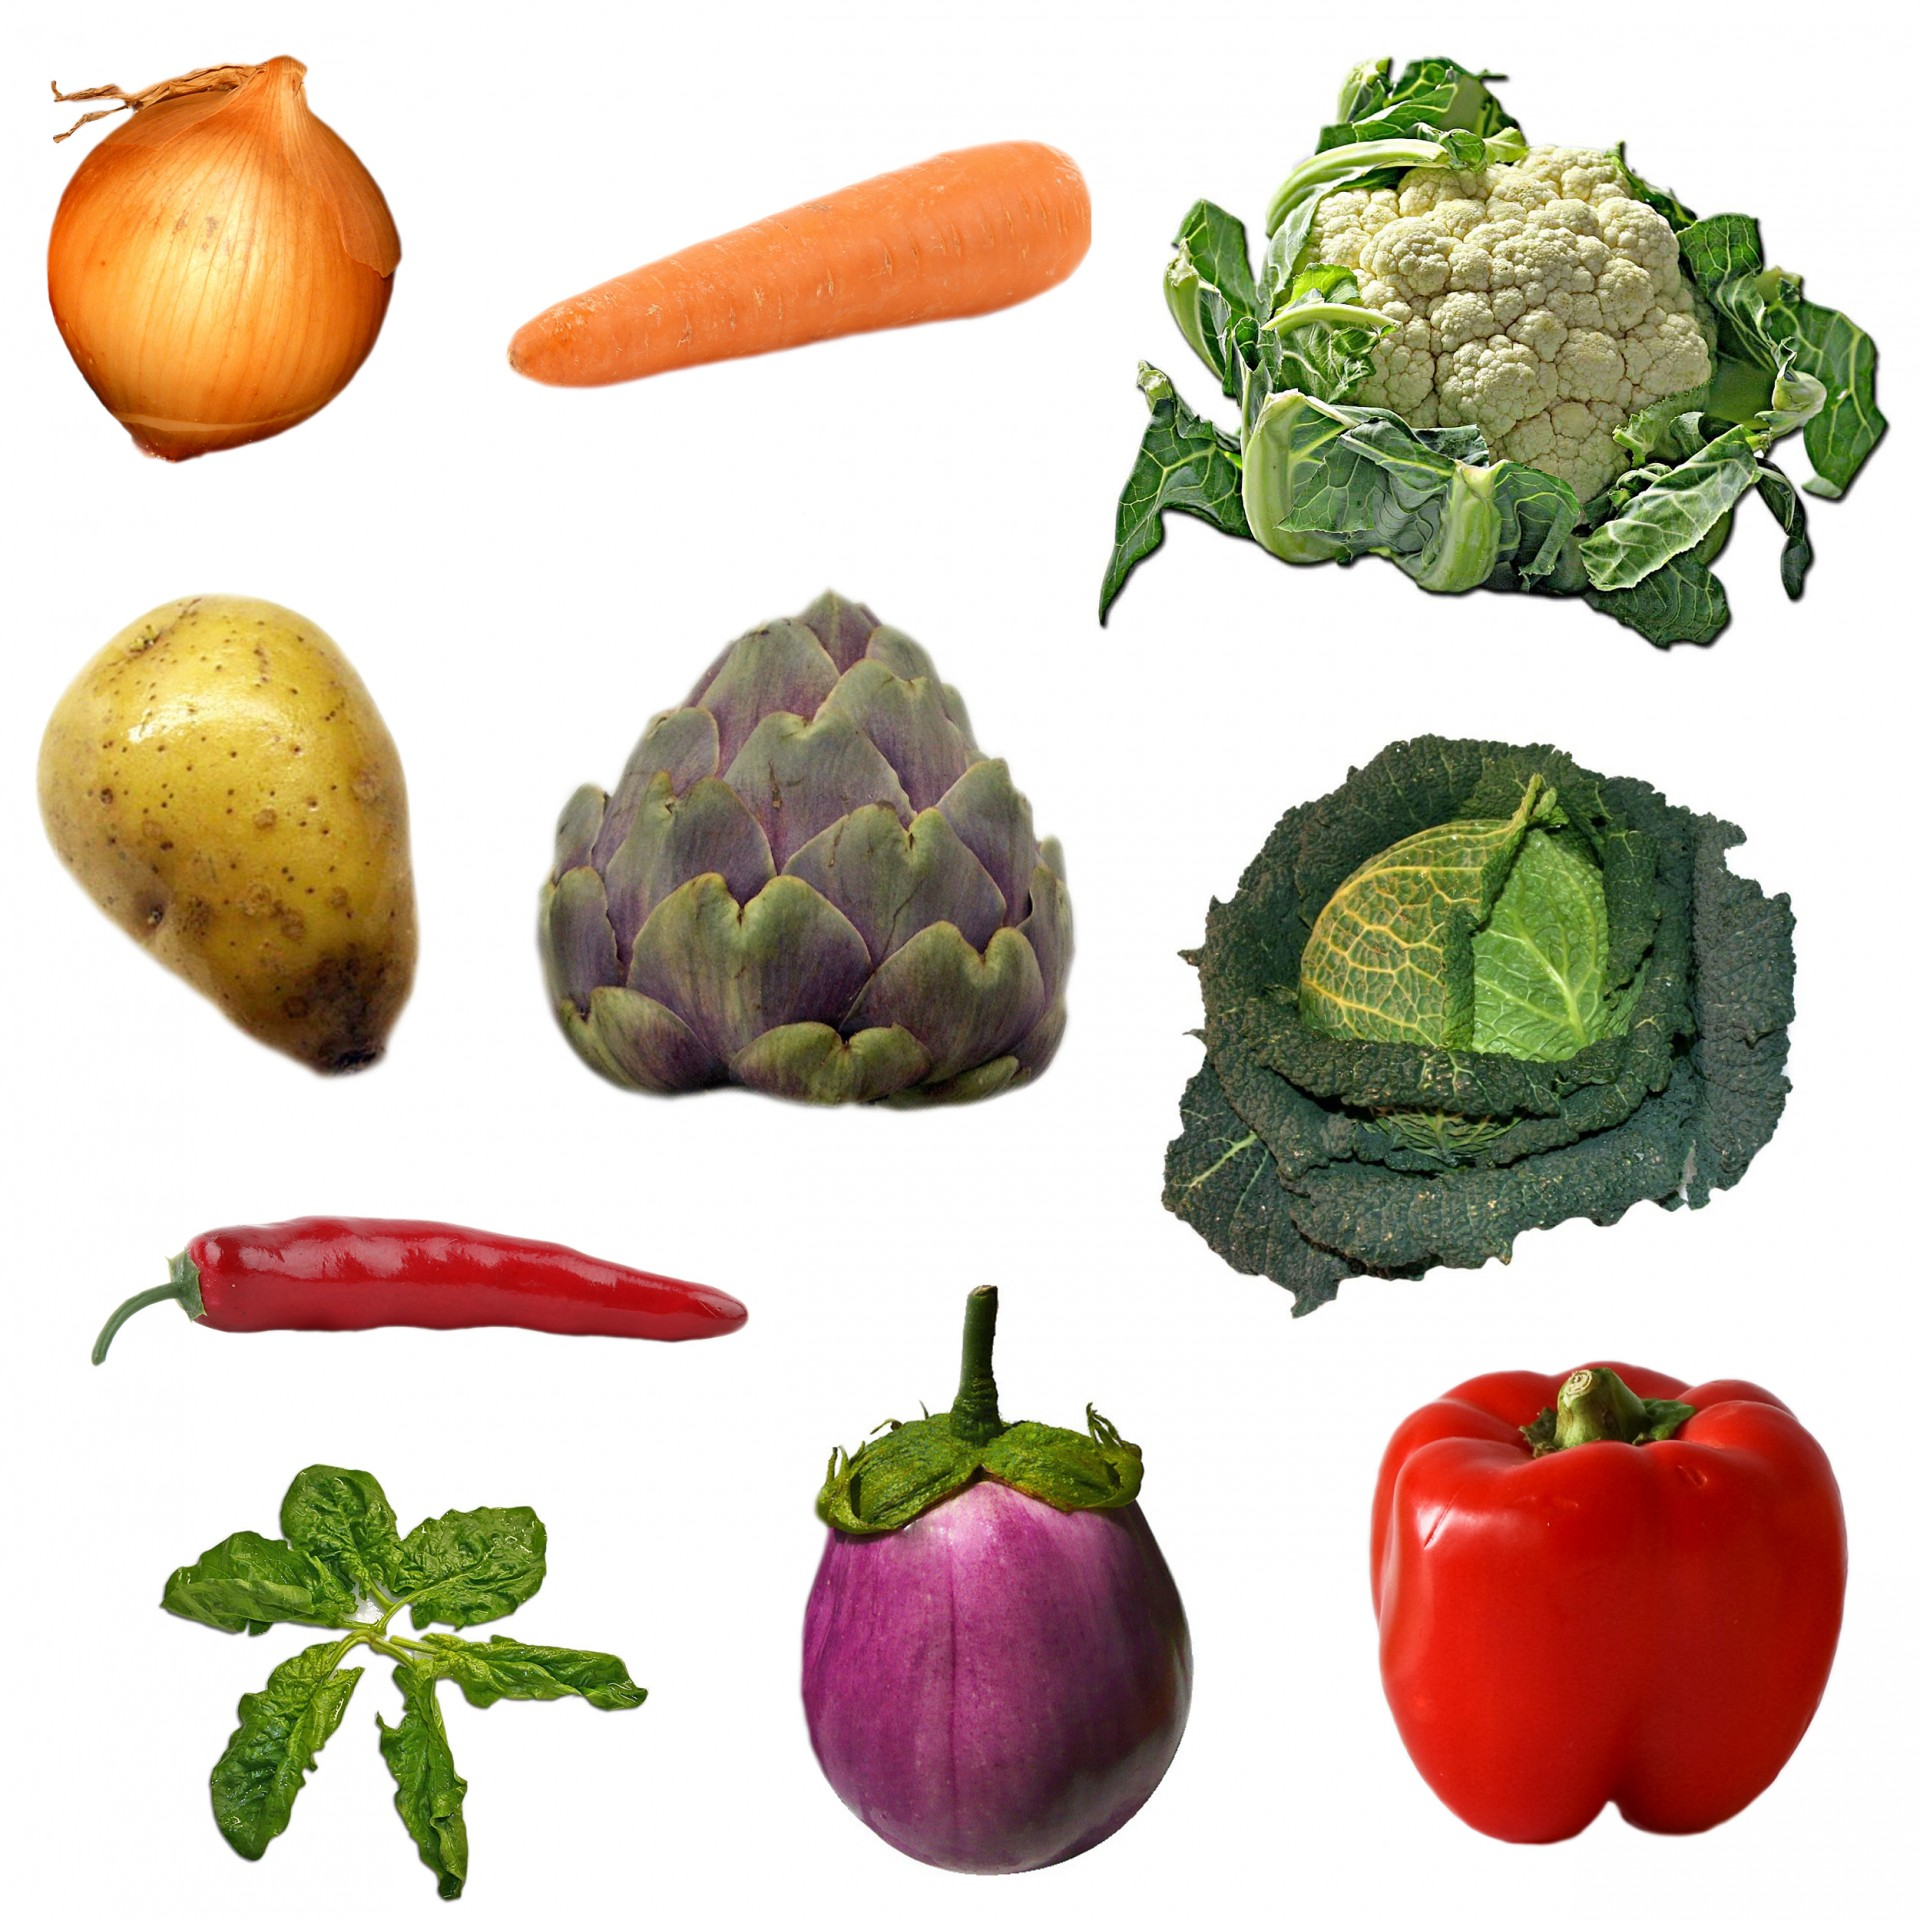 vegetables-on-white-background.jpg